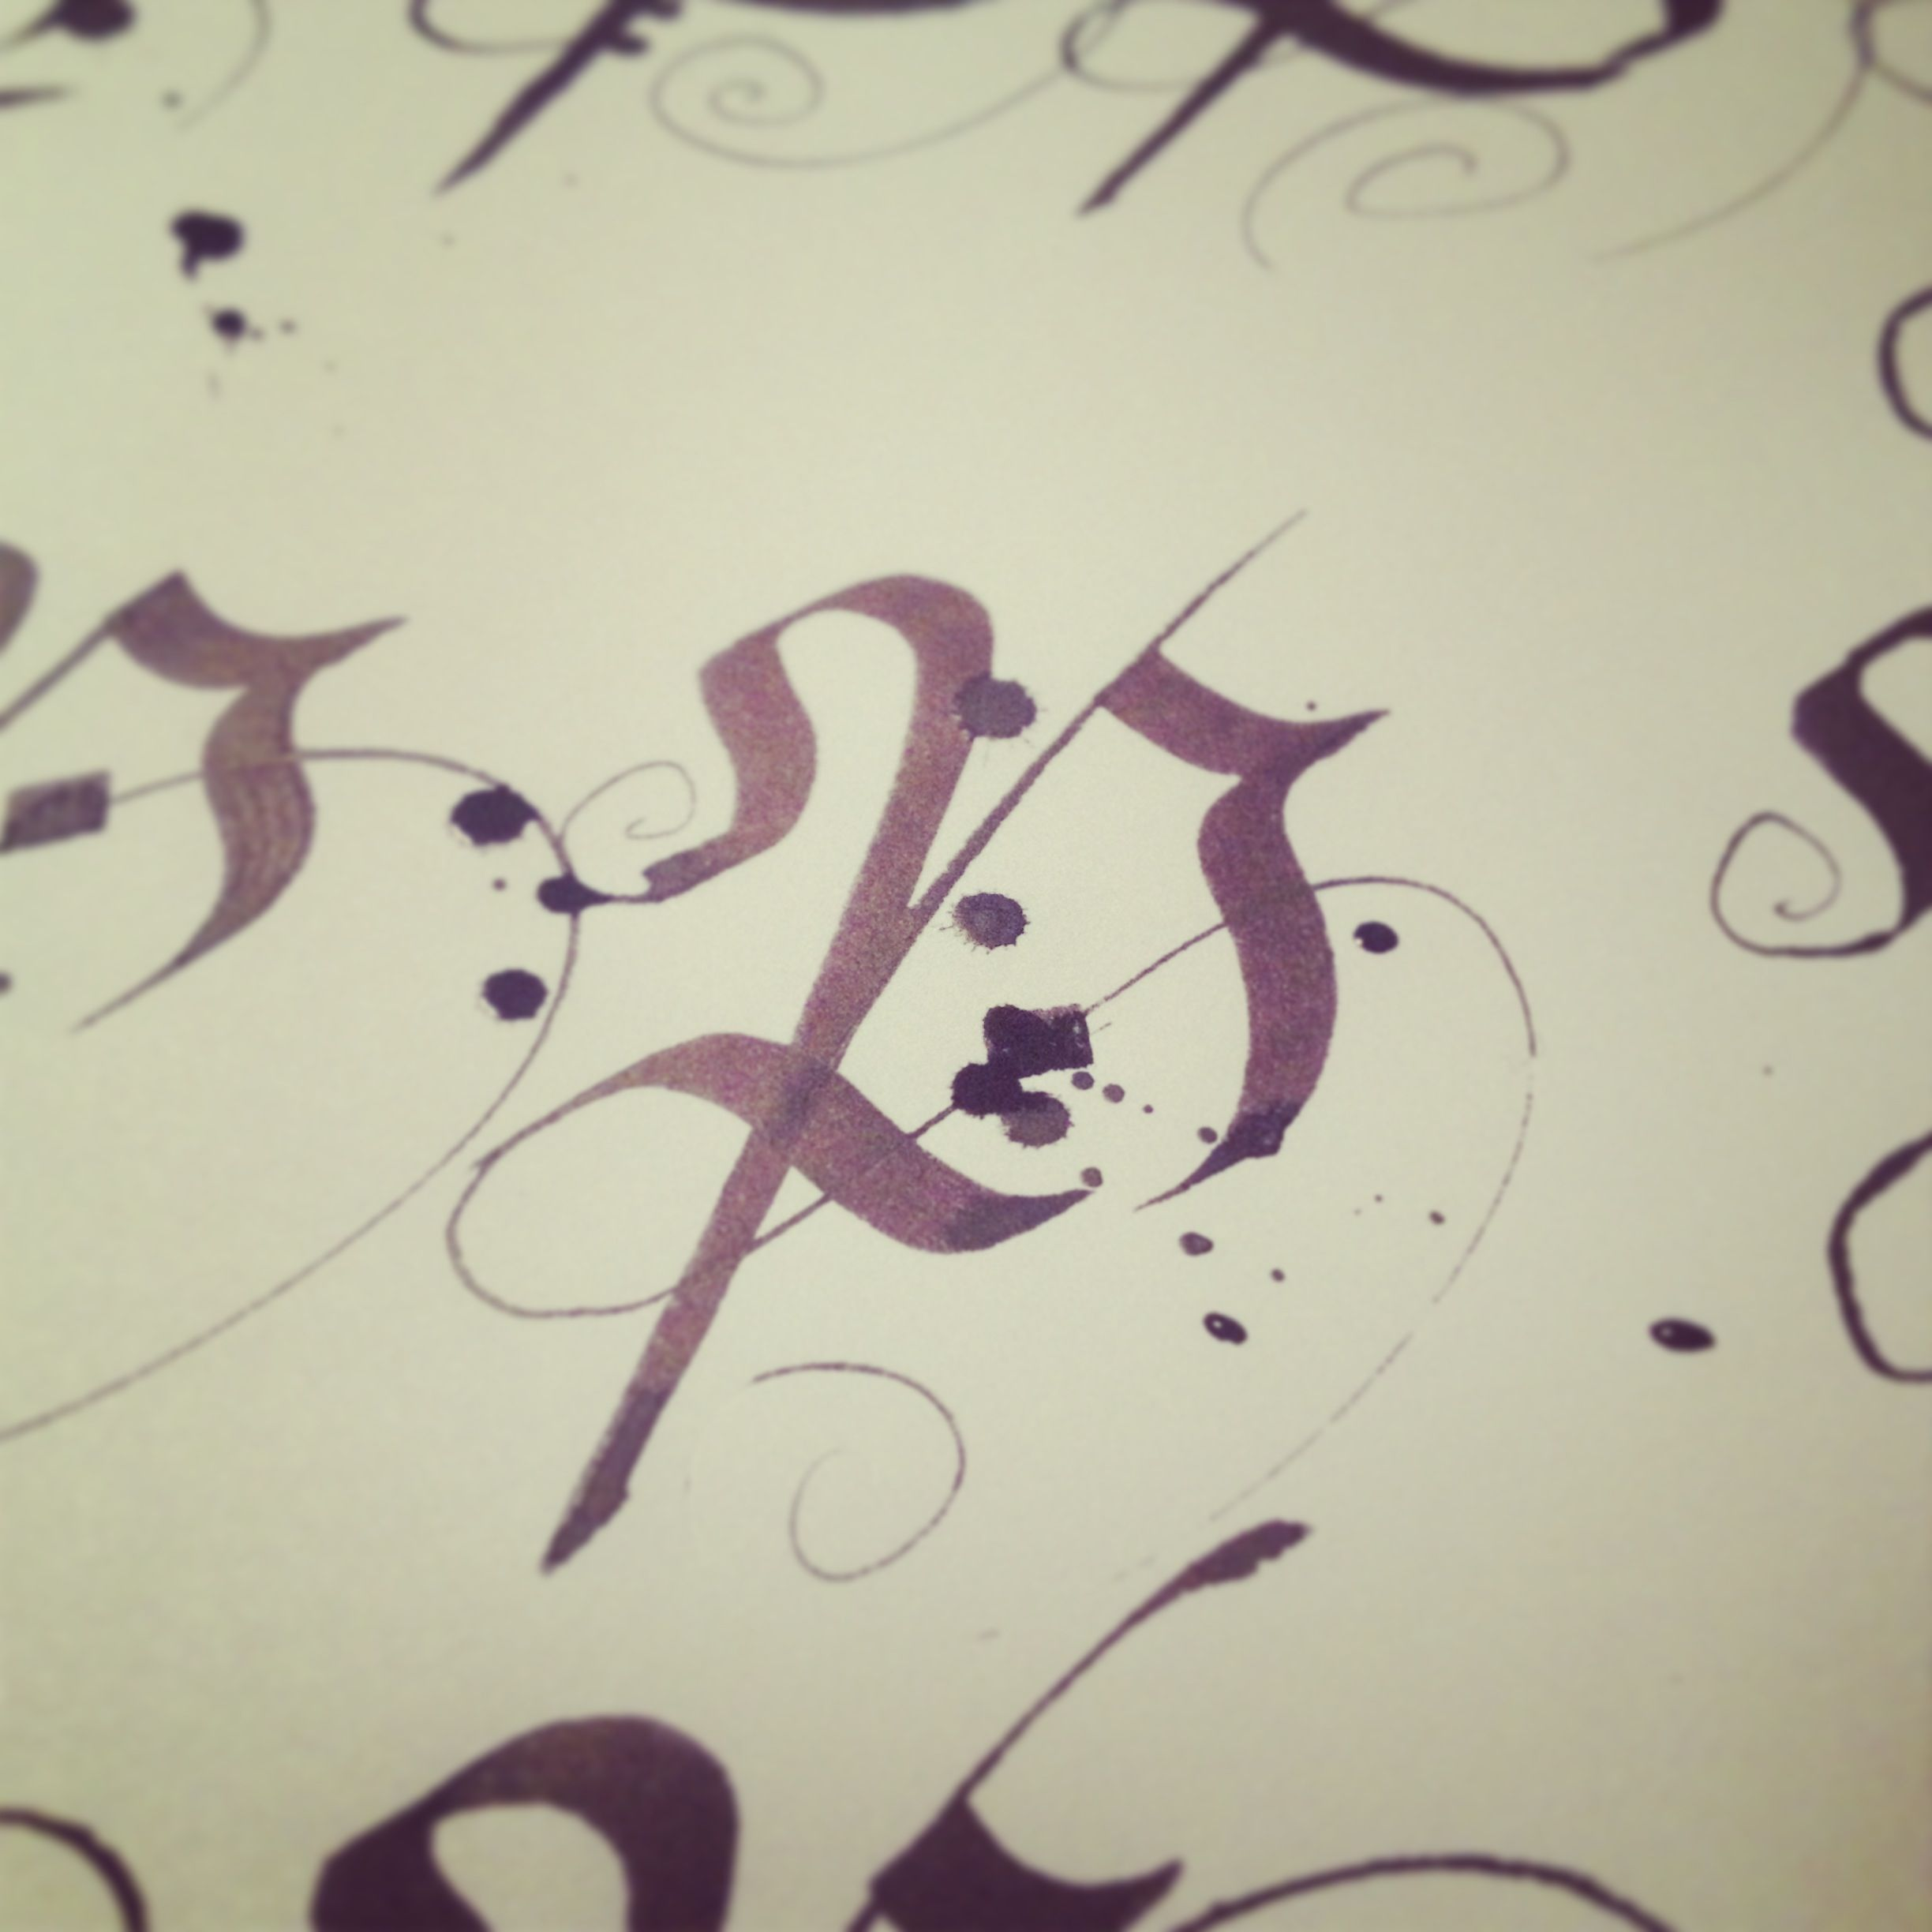 Calligraphy P, lettering.